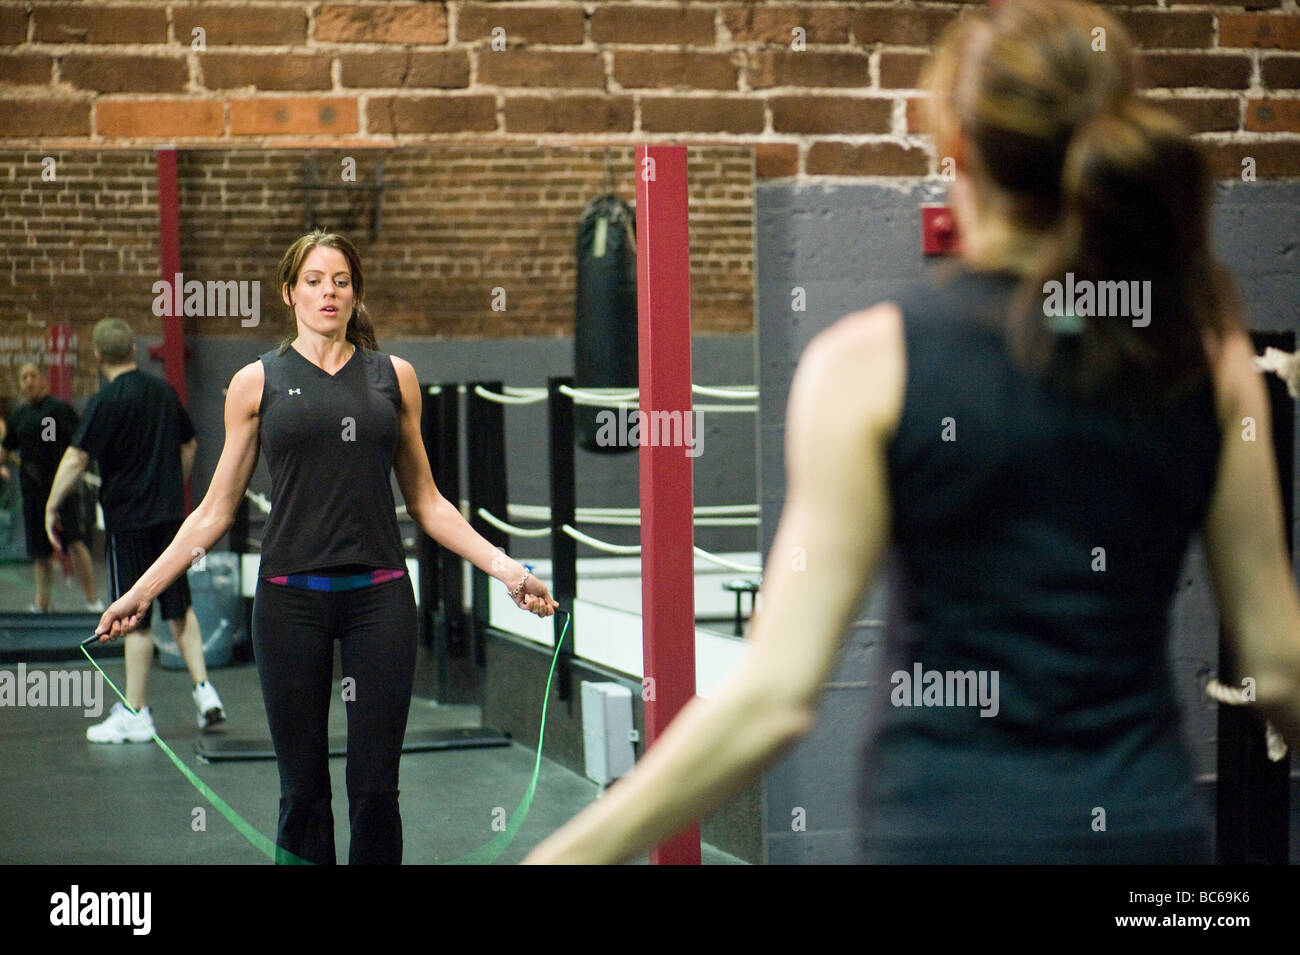 A young female athlete trains at the gym. - Stock Image